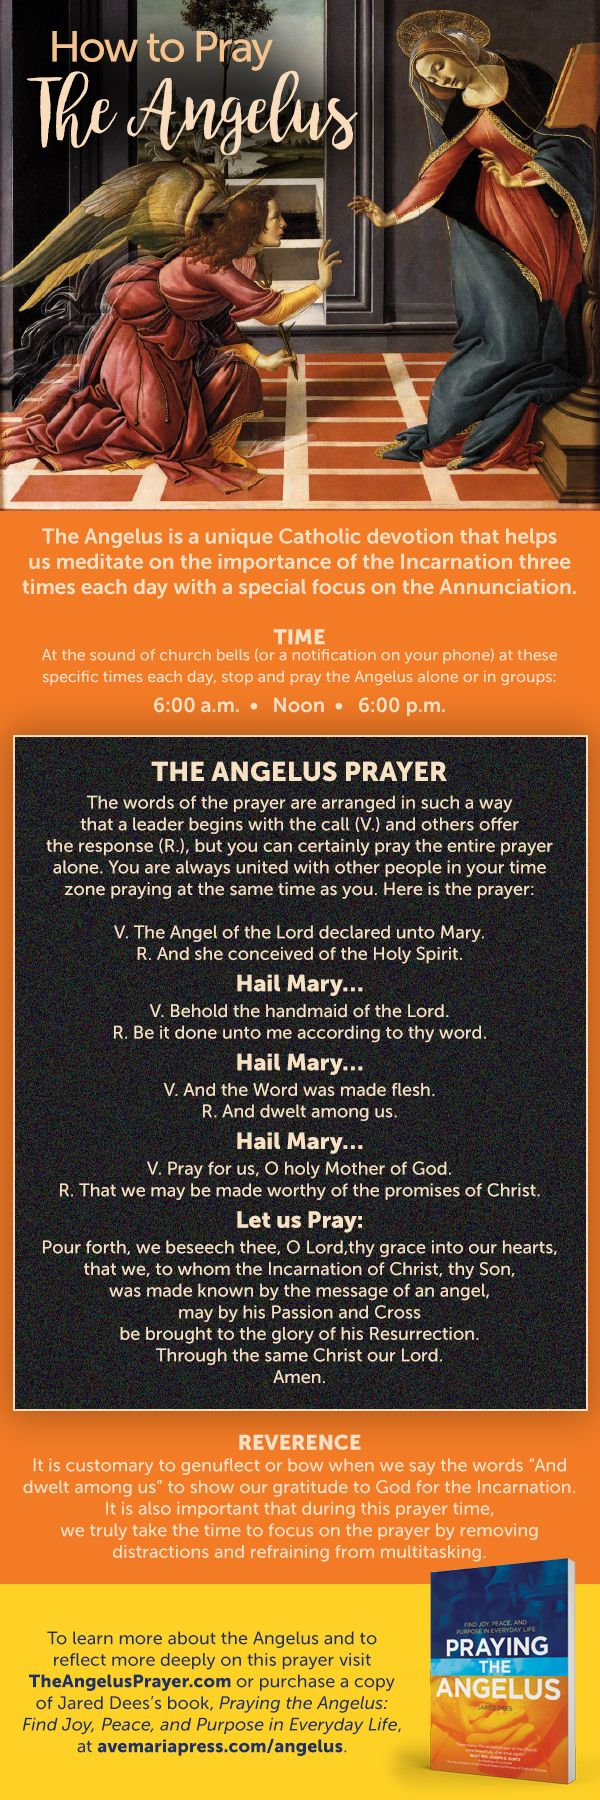 How to Pray the Angelus [Infographic] - Inspired by Praying the Angelus: Find Joy, Peace, and Purpose in Everyday Life by Jared Dees